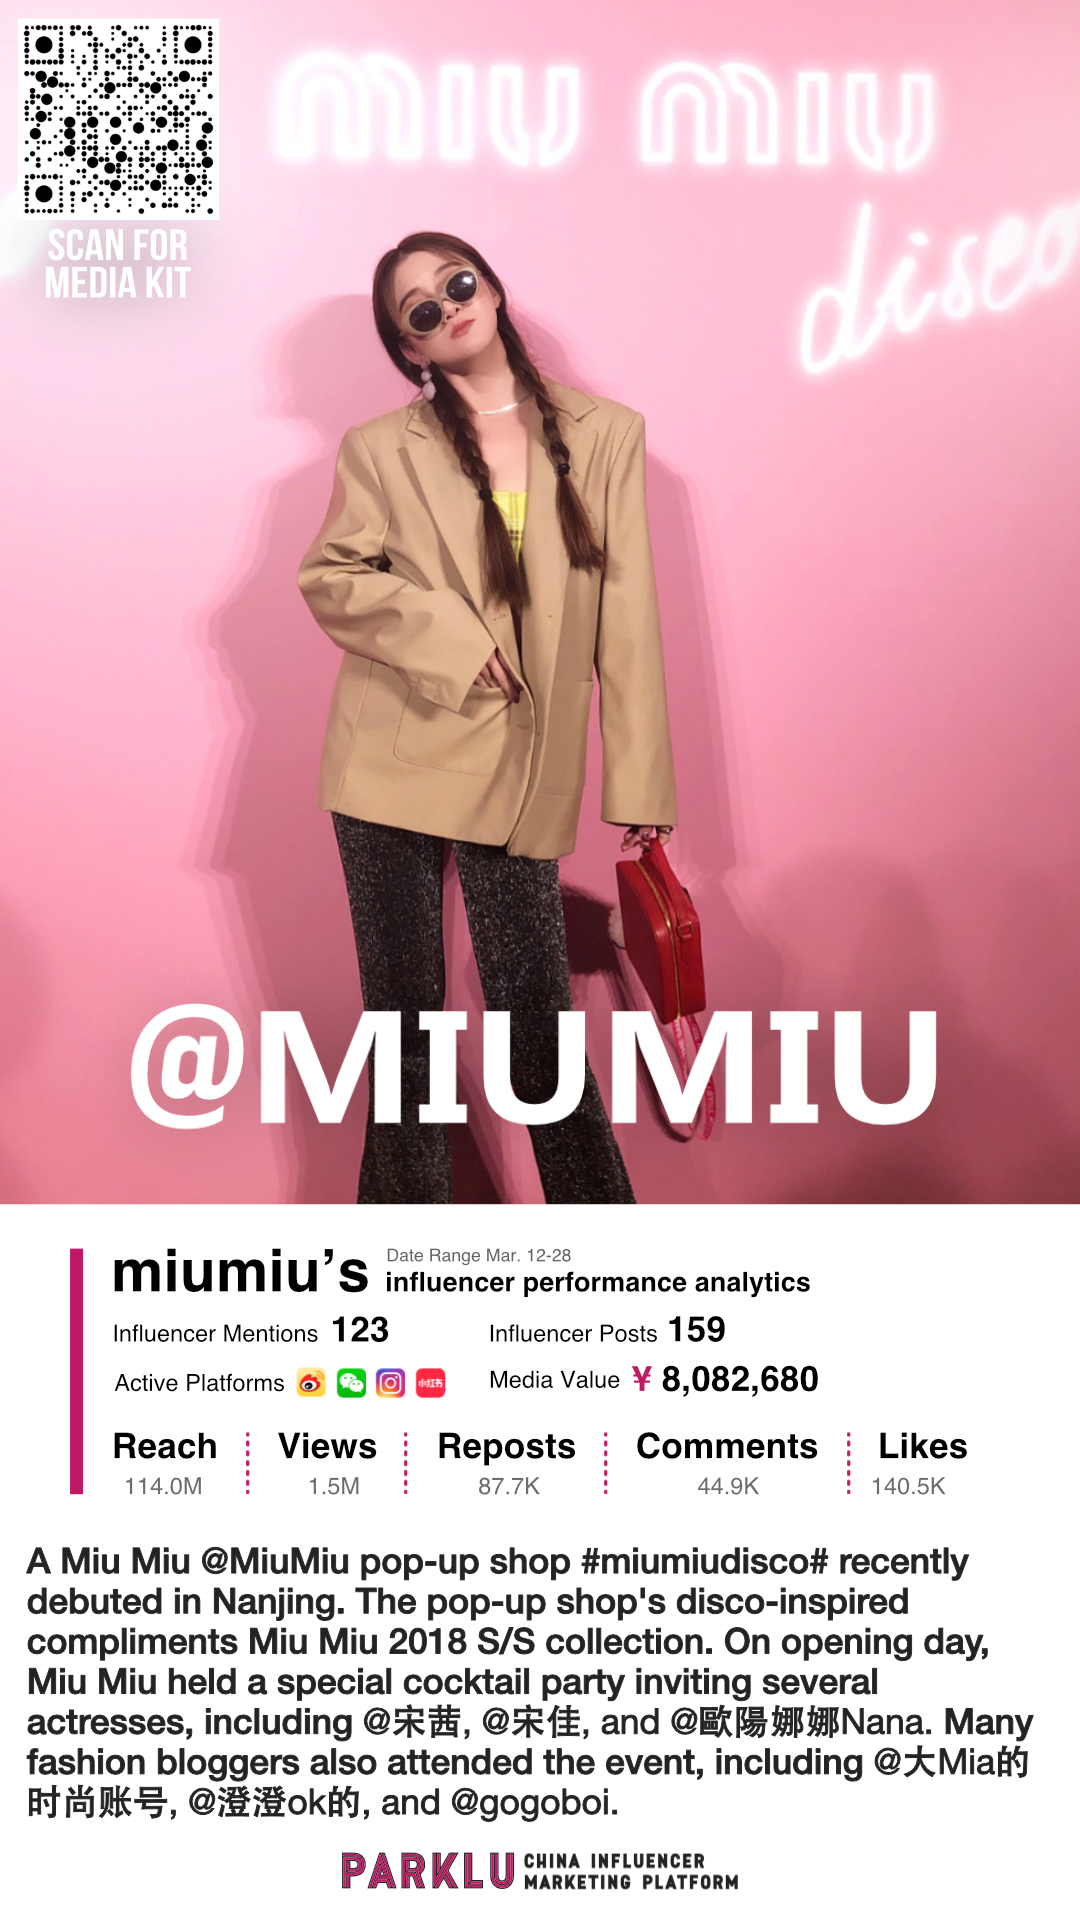 MiuMiu Pop-up Shop in Nanjing with Actresses & Influencers